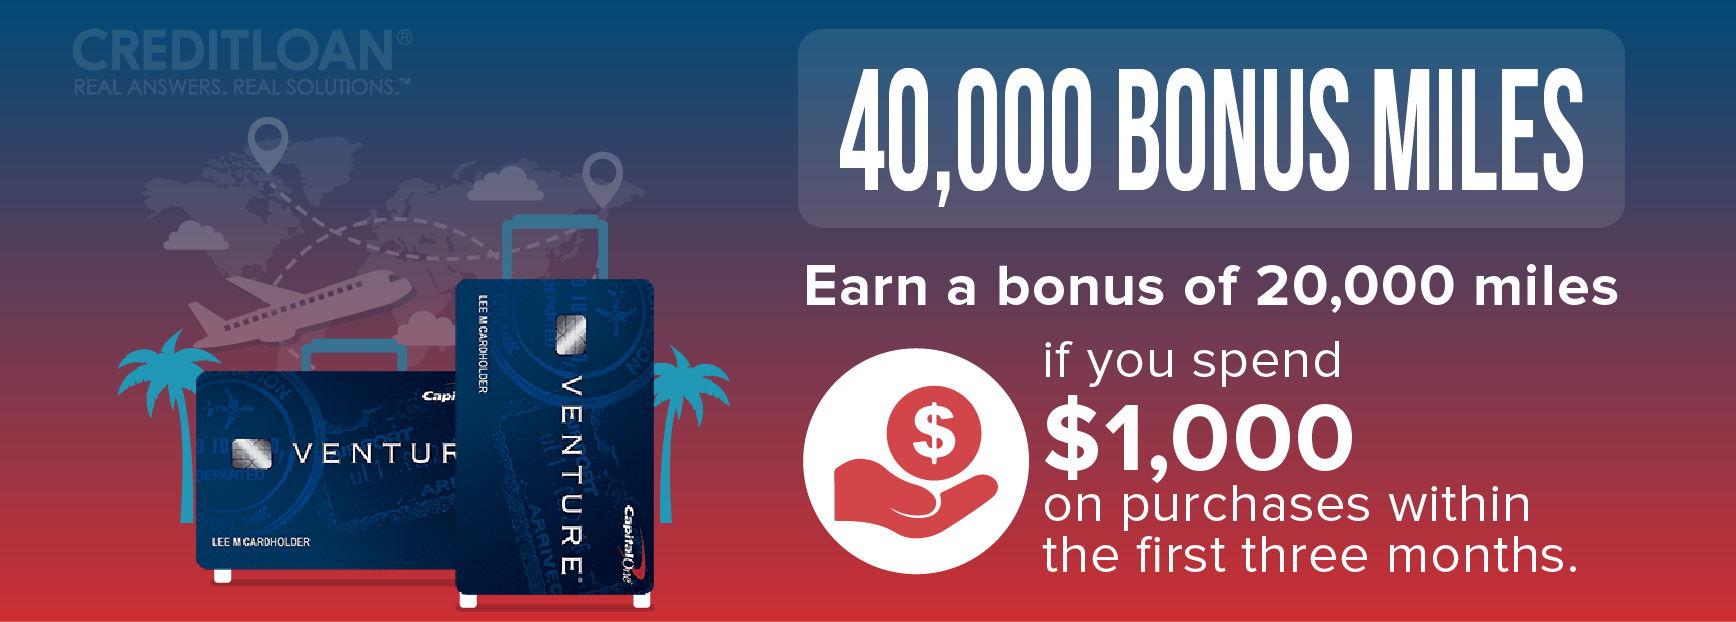 10 Creative Ways to Use the Capital One Venture Card - oukas.info